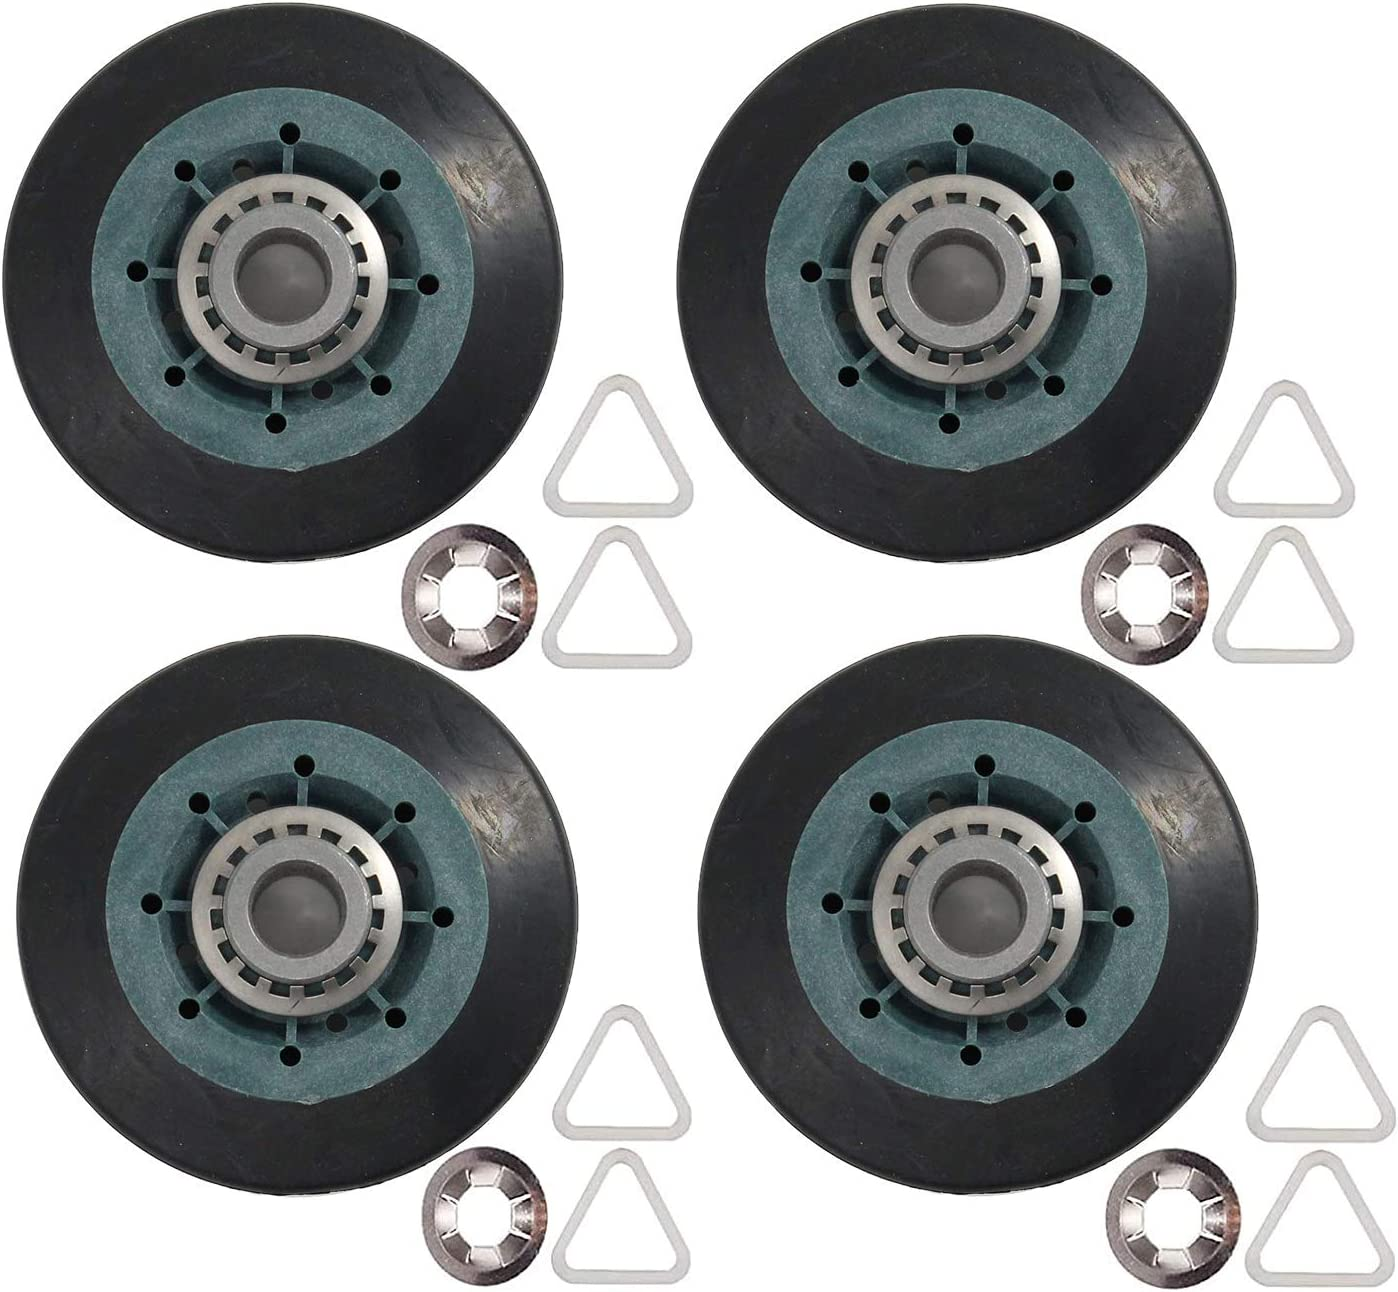 W10314173 Dryer Drum Support Roller Kit for Whirlpool, Kenmore & Maytag - Replaces 8536974 WPW10314173 AP6019303 8536973 W10314171 PS11752609 - PACK OF 4